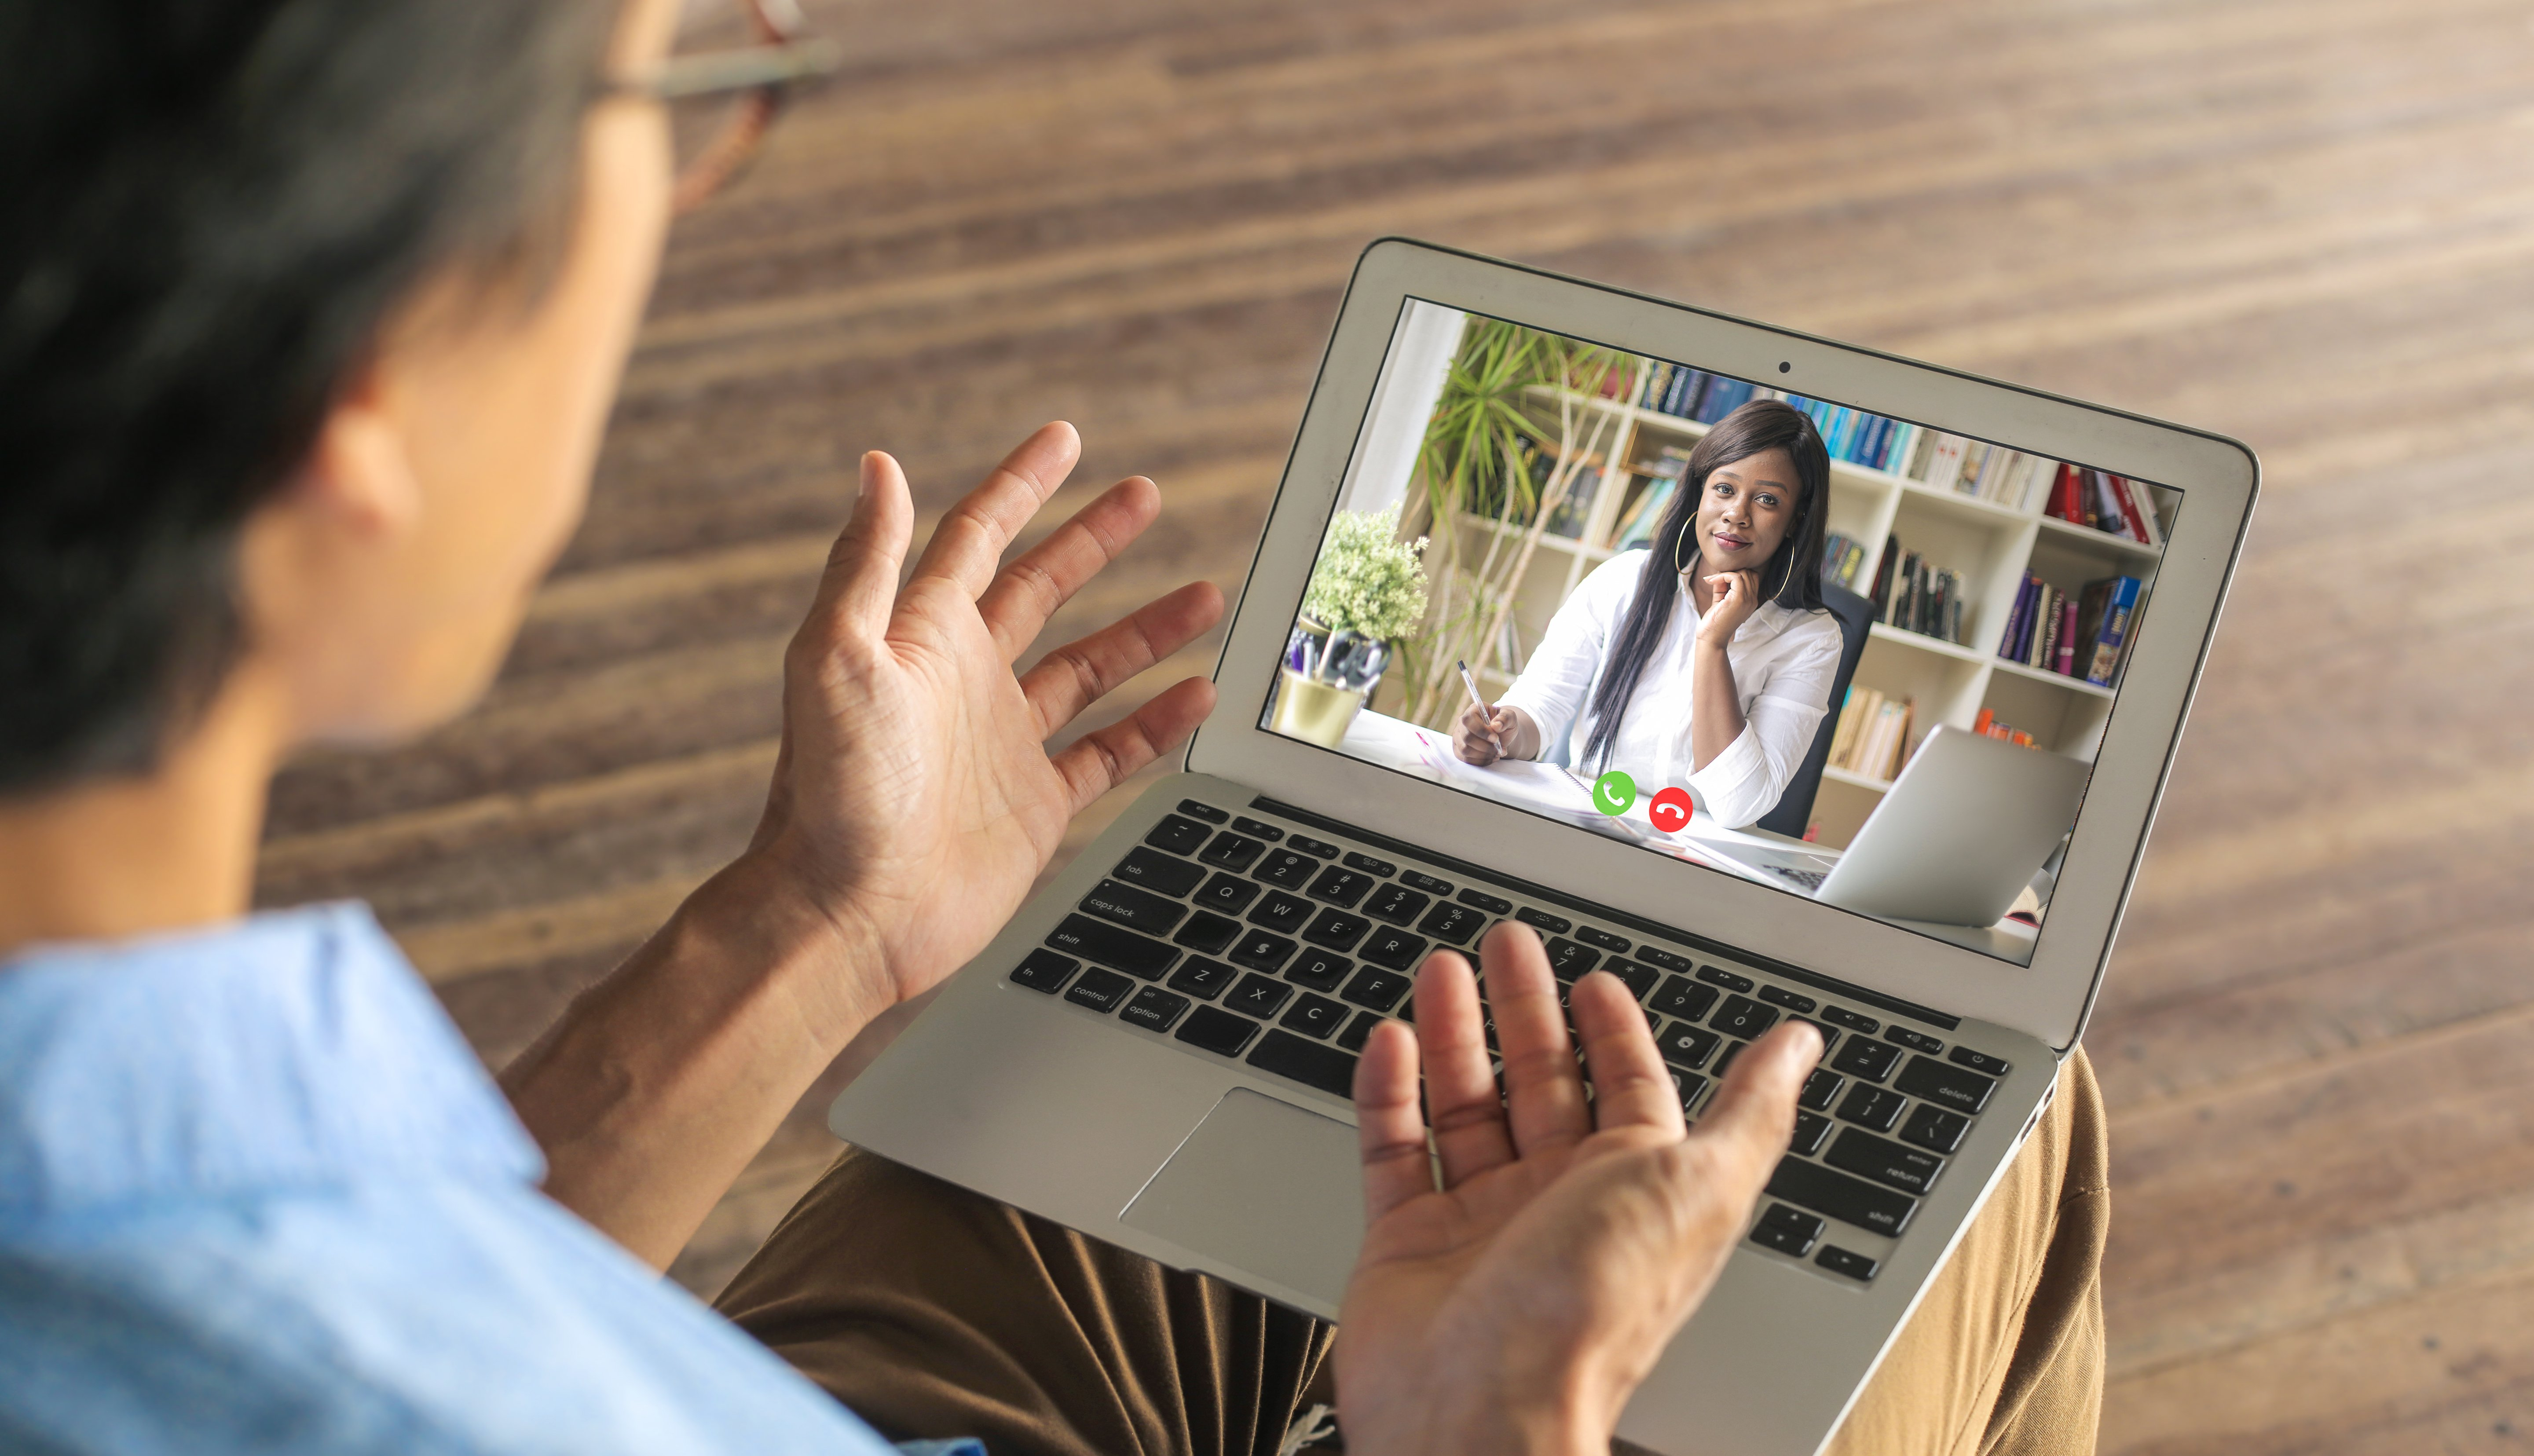 man talking to doctor through a laptop video call